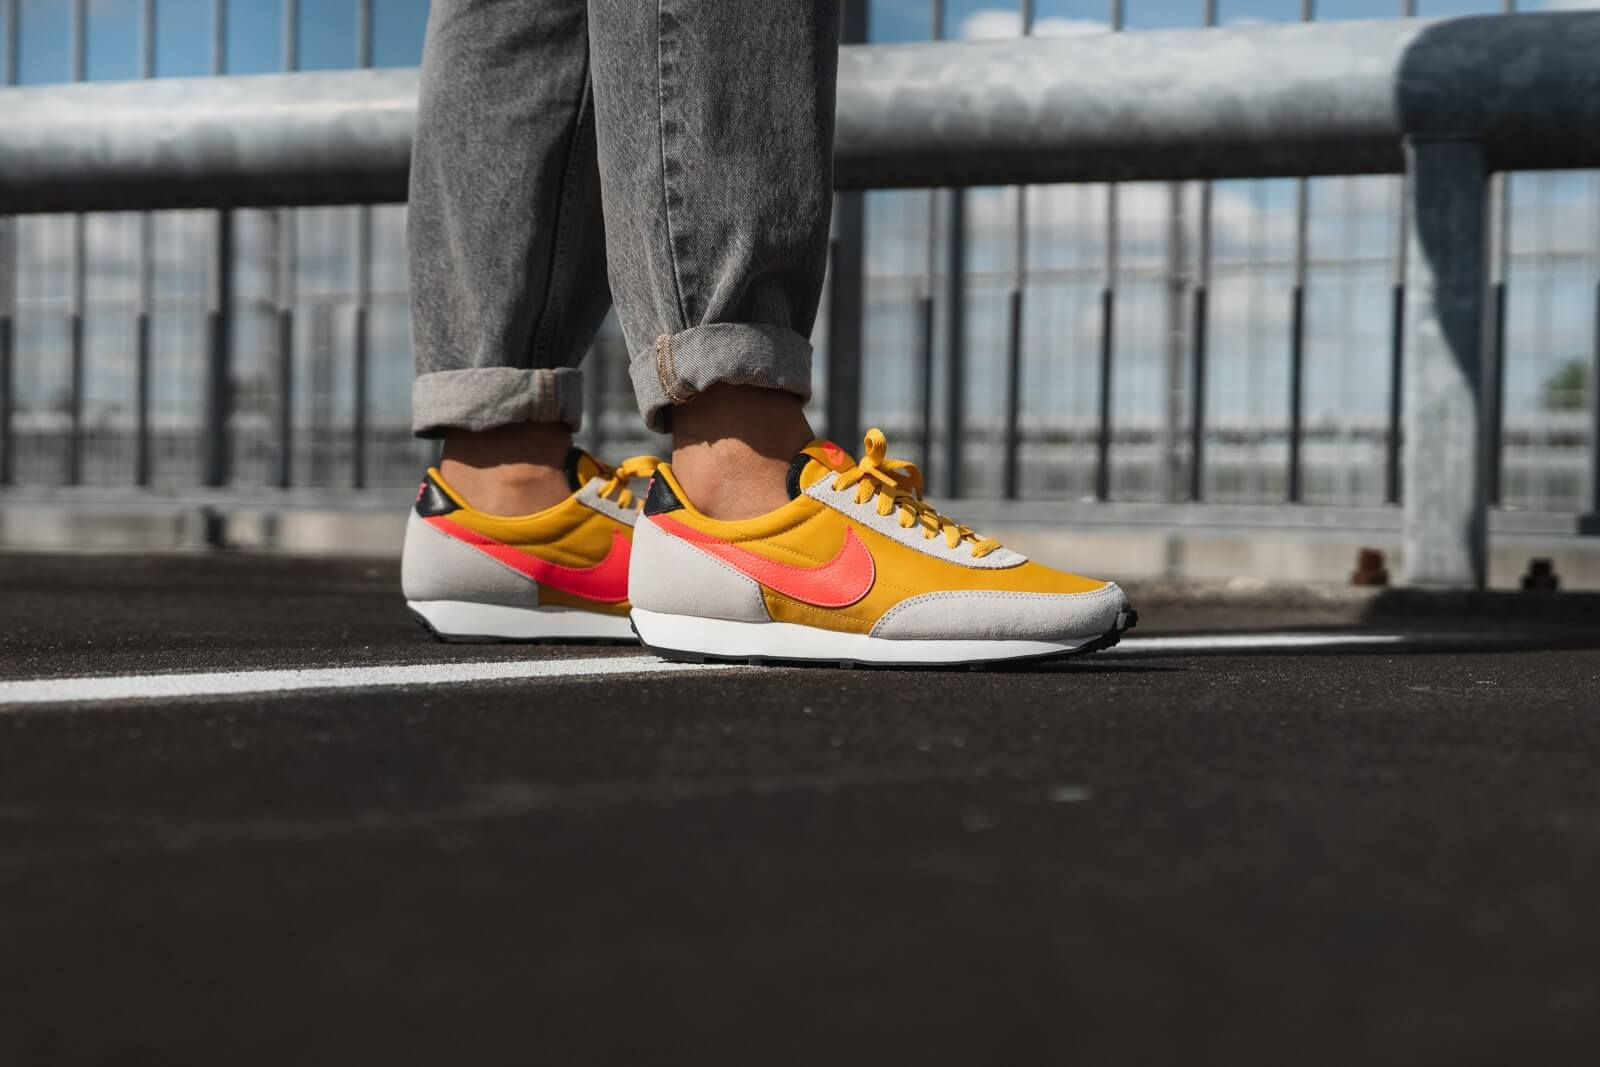 Nike WMNS Daybreak - Dark Sulfur/Flash Crimson/Summit White #CK2351-701-Preorder Item-Navy Selected Shop